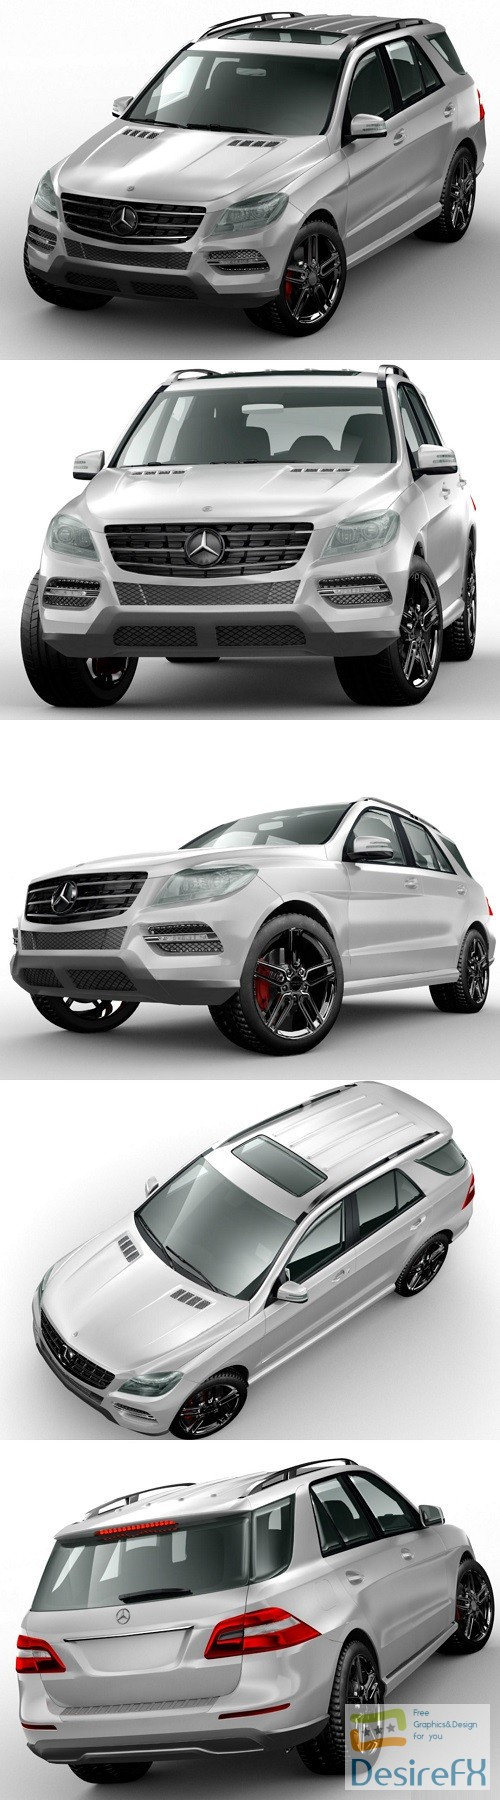 3d-models - Mercedes-Benz ML350 AMG 3D Model